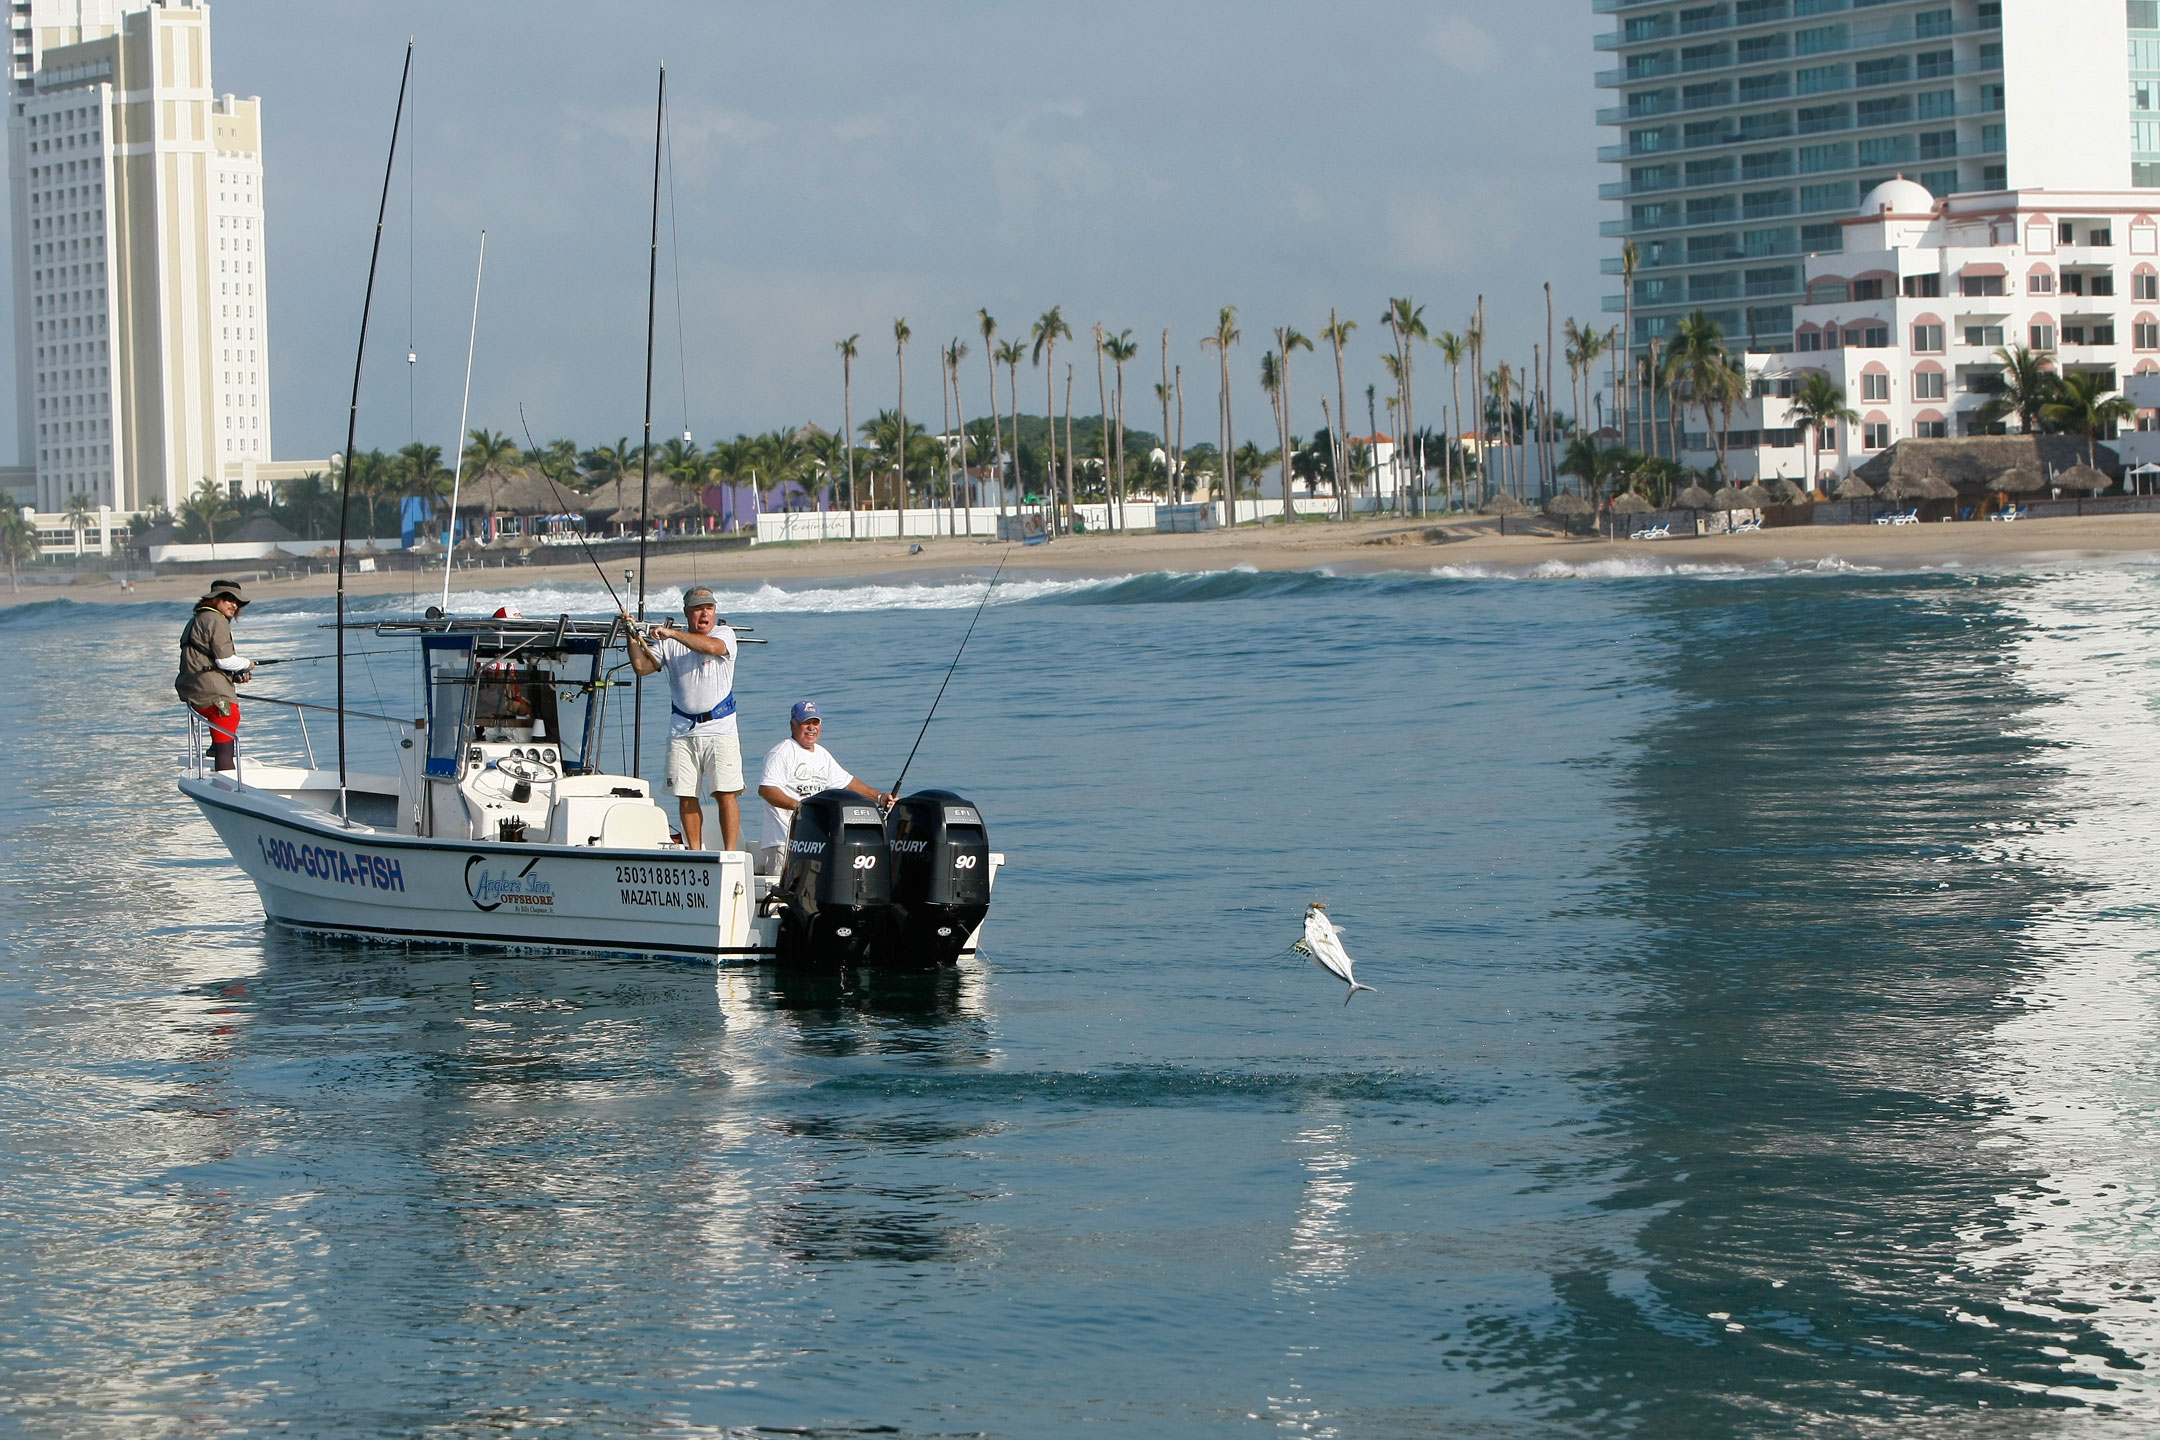 Vacation in Mexico: Fun Family Fishing